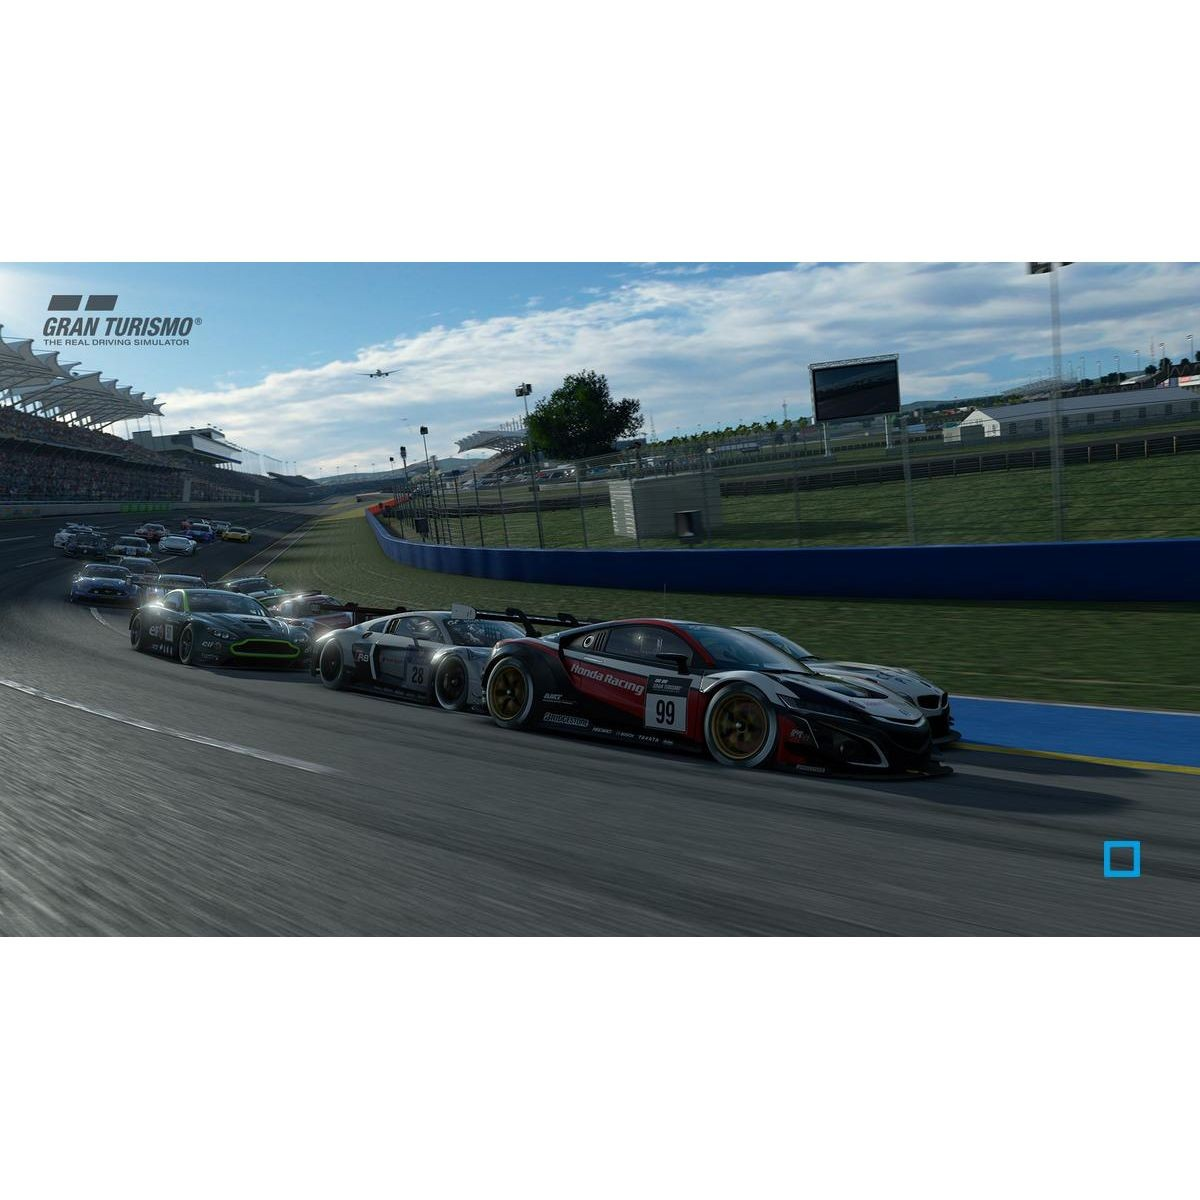 Gran Turismo Sport Ps4 Taille TU Jeux ps4, Ps4, Console